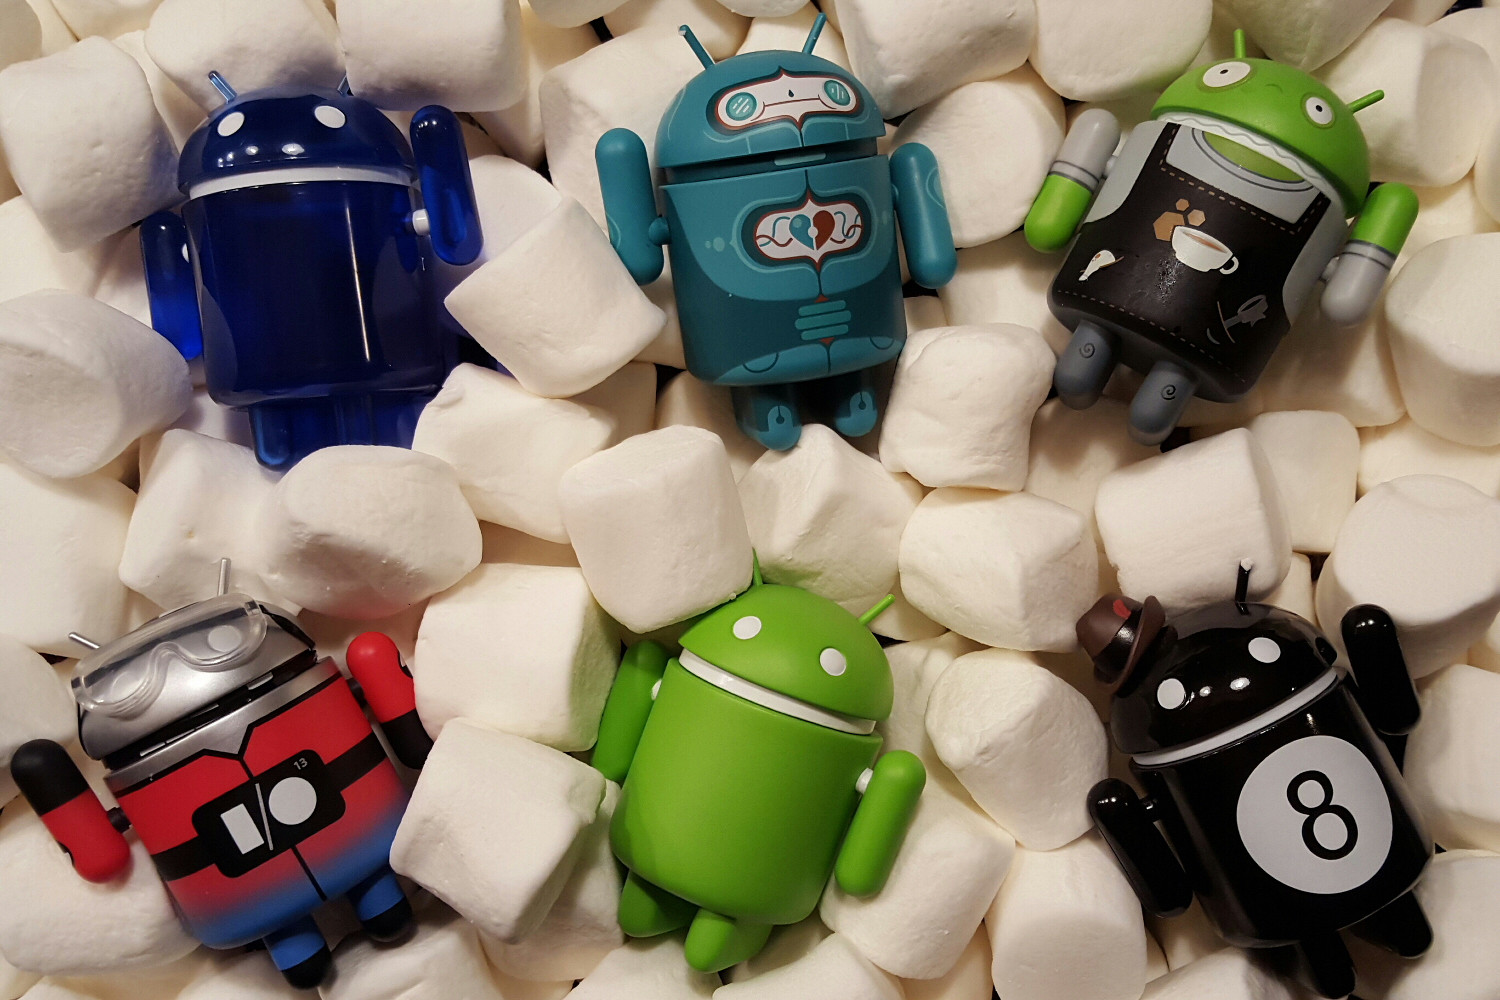 More than 600 Android-running phone models were launched this past year